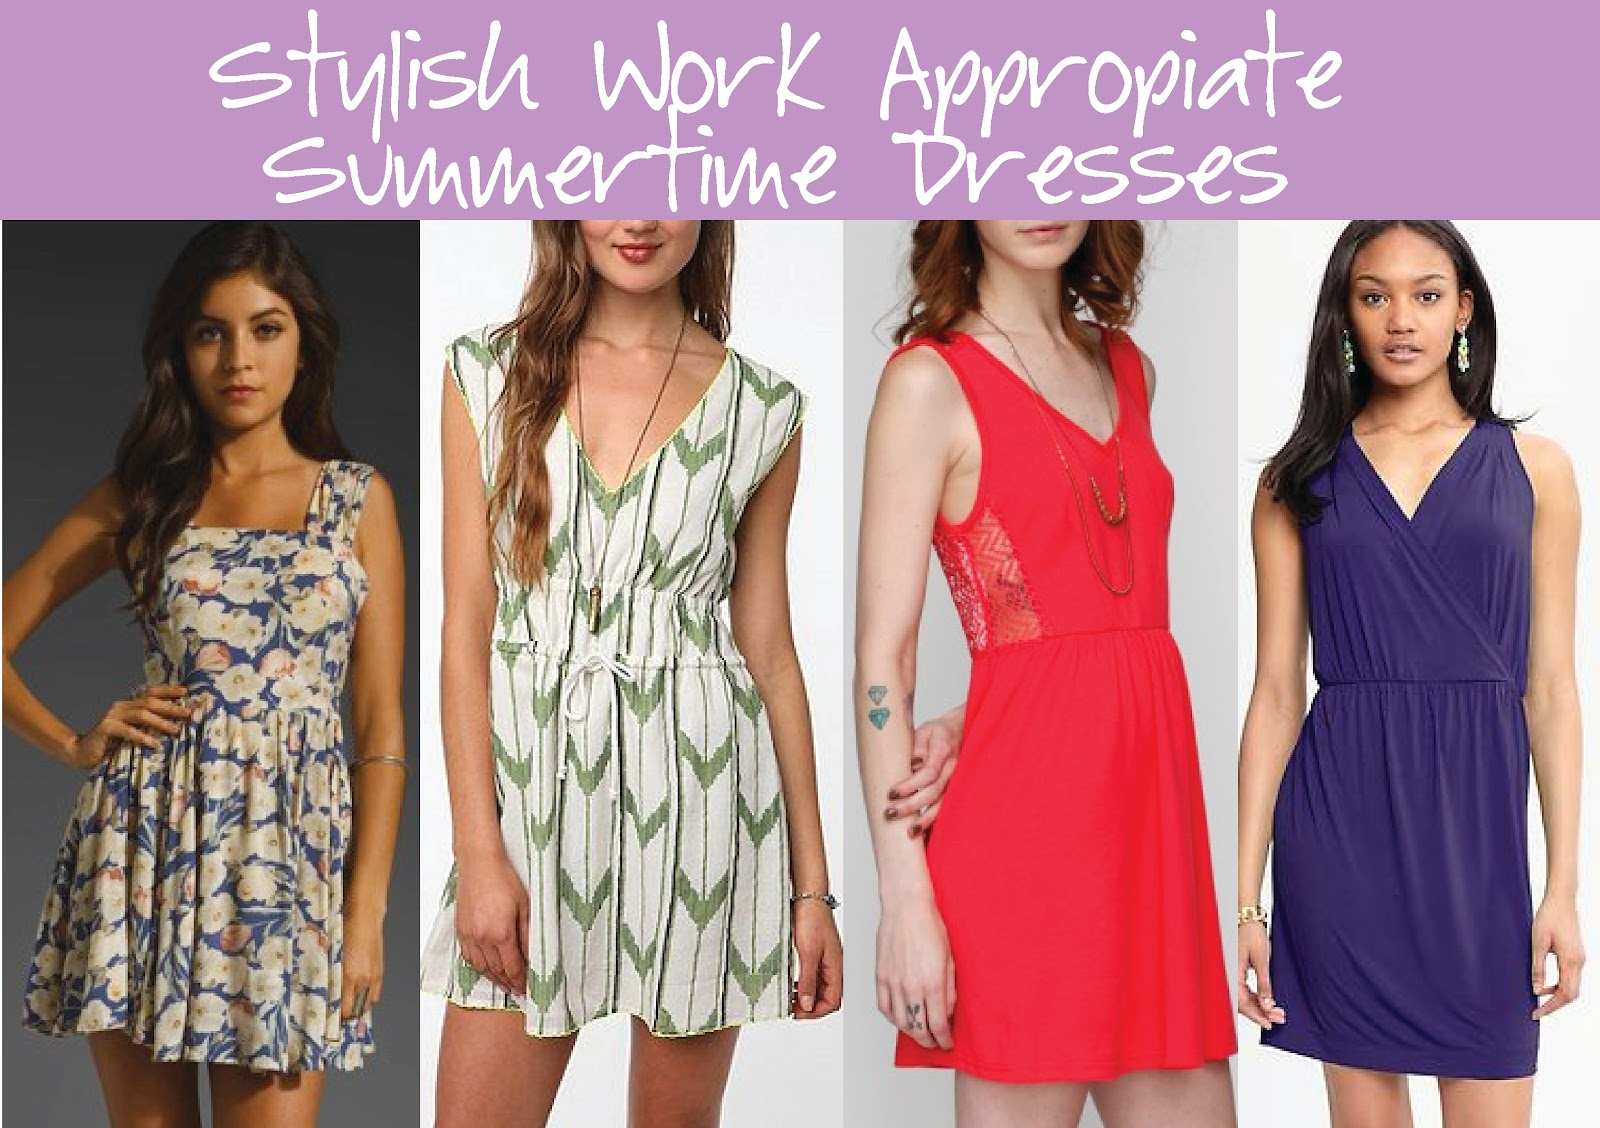 f6994f82270a Stylish Work Appropriate Summertime Dresses | Stylelista Confessions